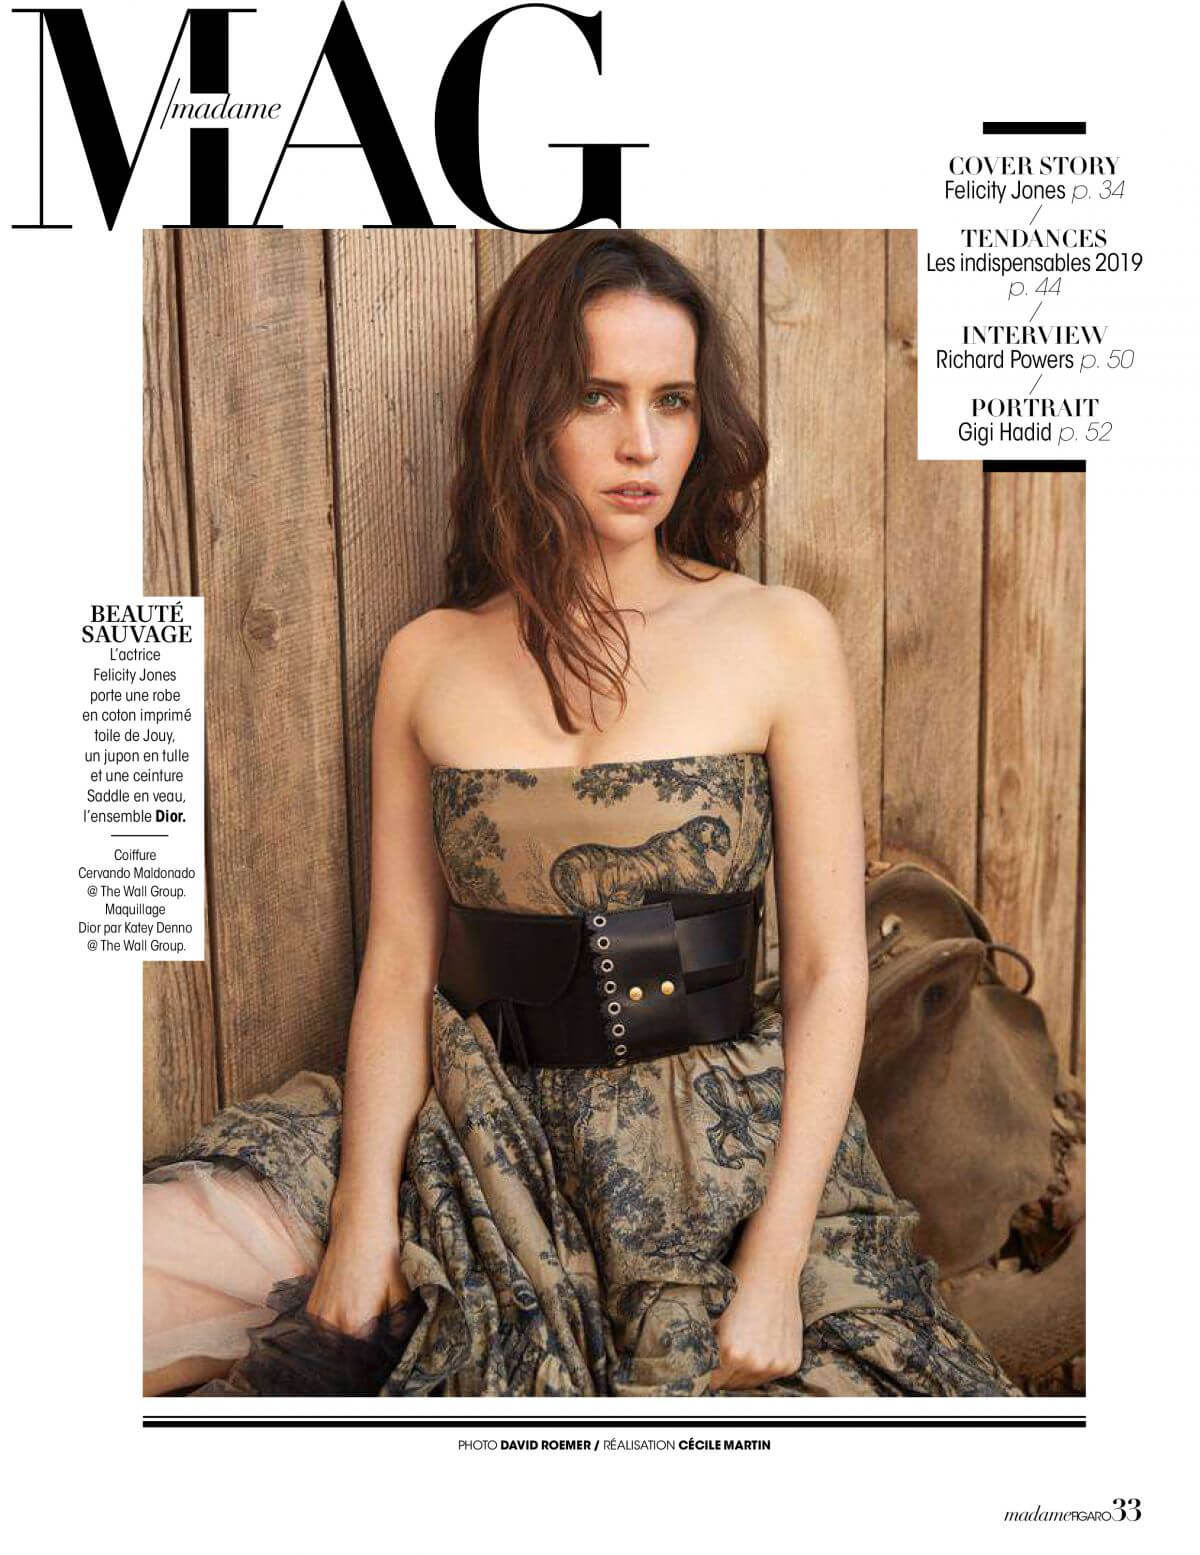 Felicity Jones in Madame Figaro, December 2018 1